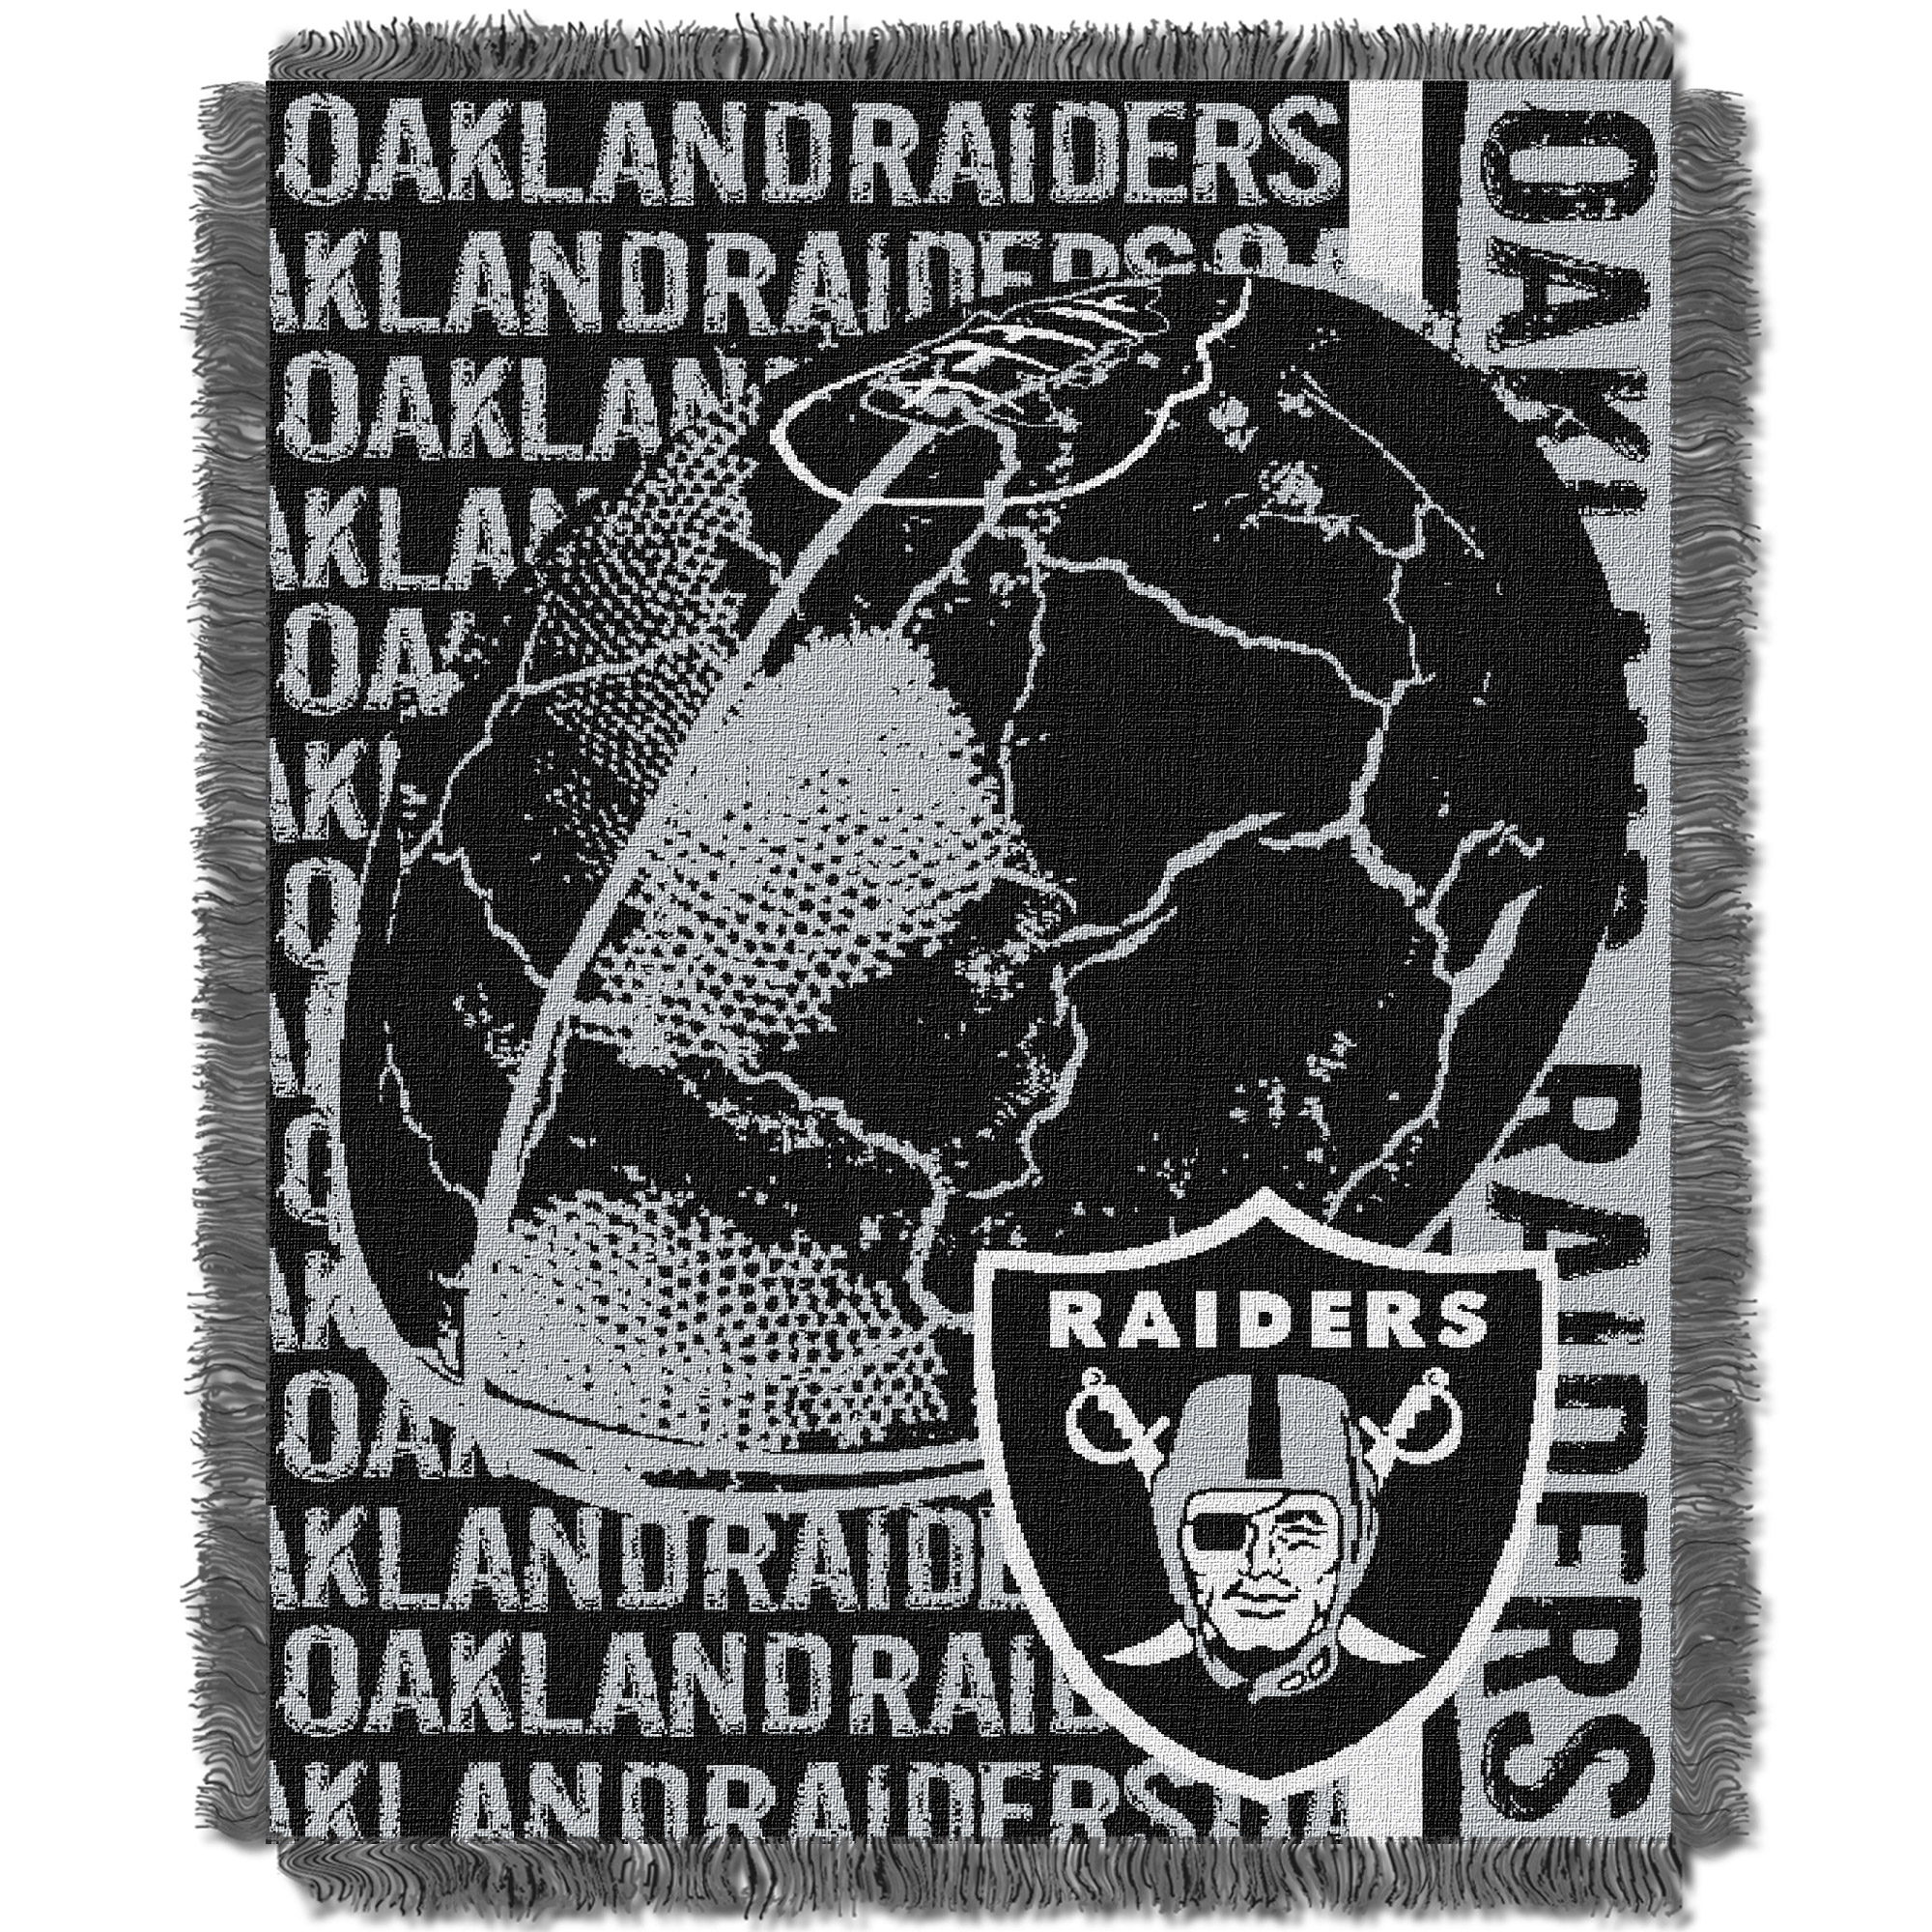 Oakland Raiders The Northwest Company 46'' x 60'' Double Play Jacquard Throw - No Size